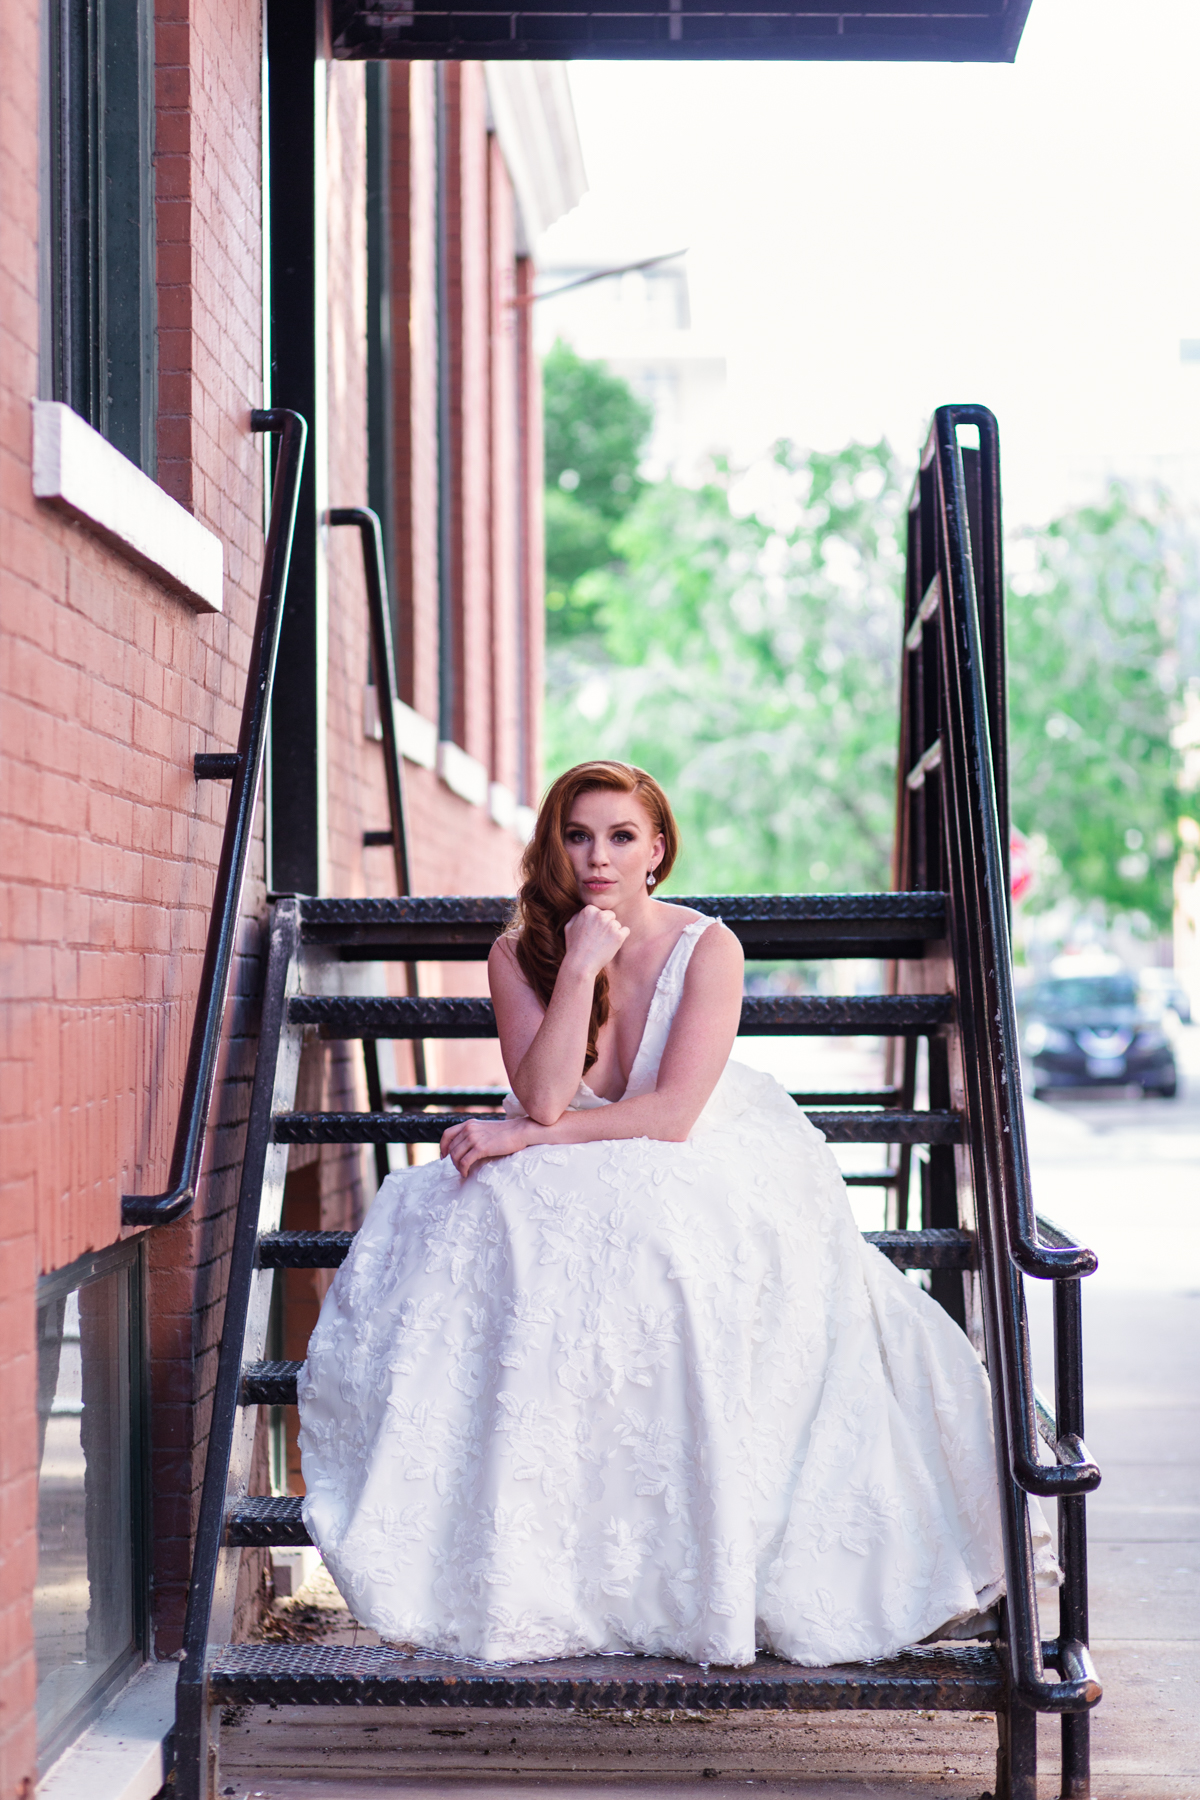 Rooftop-bridal-shoot-by-Emma-Mullins-Photography-16